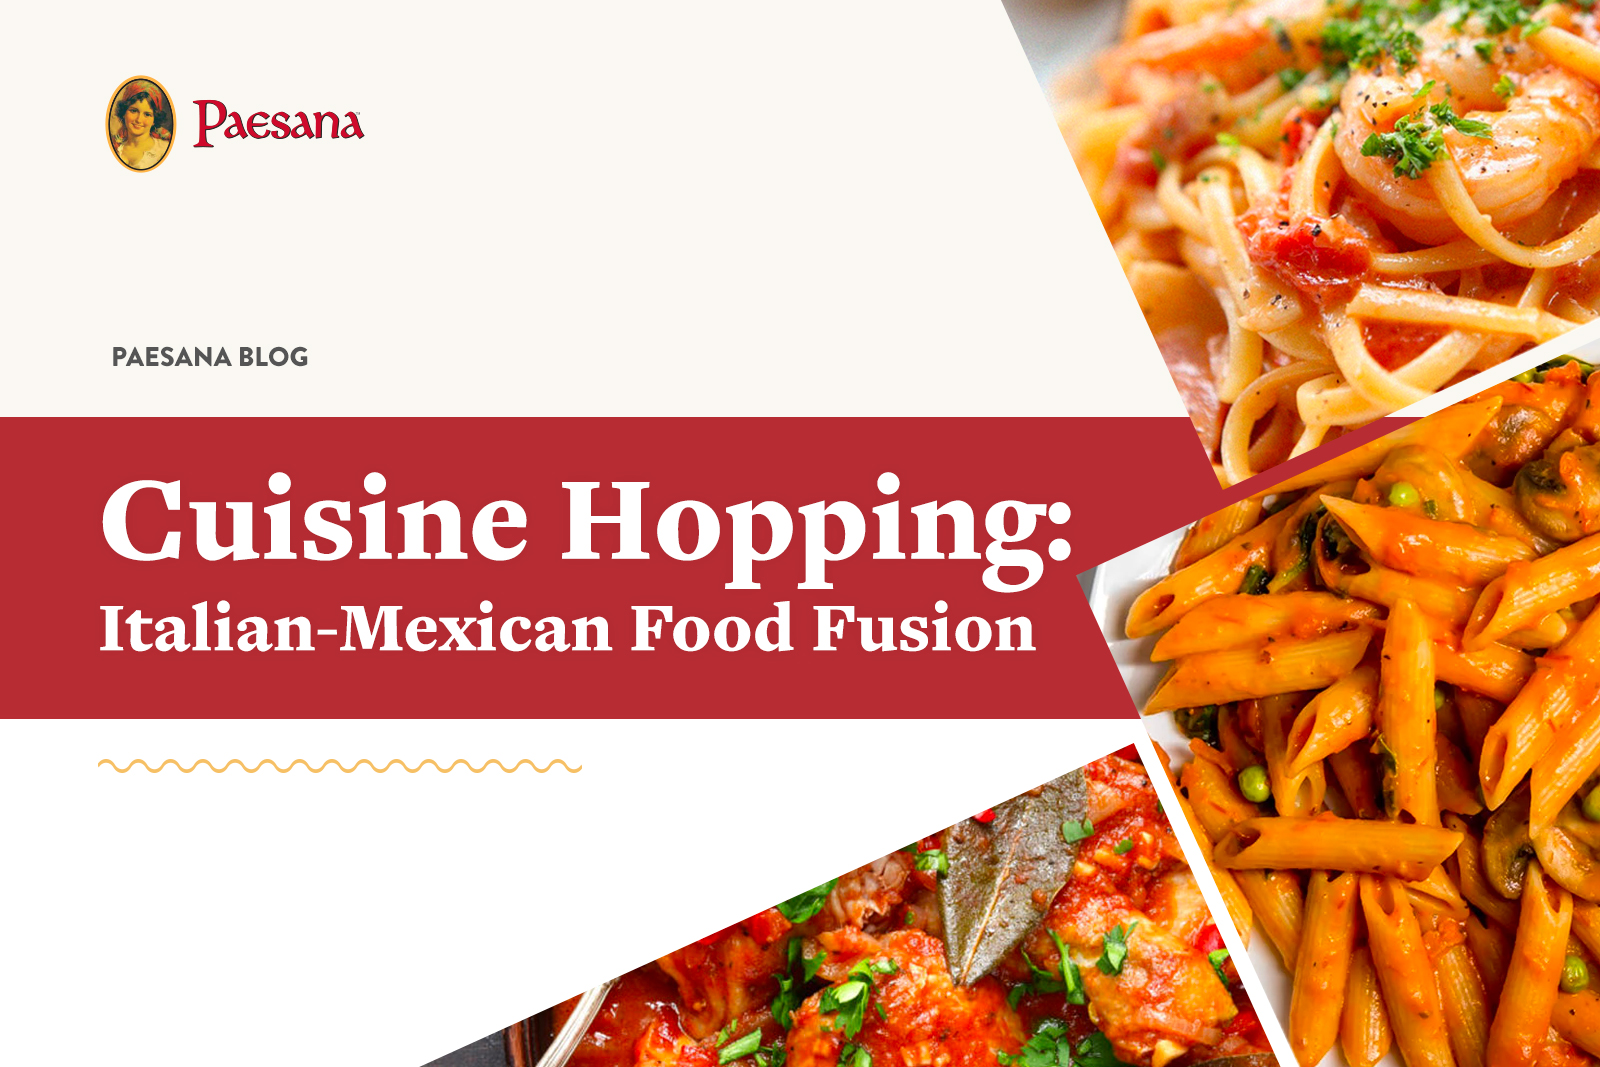 Assorted italian dishes with text - Cuisine Hopping- Italian-Mexican Food Fusion